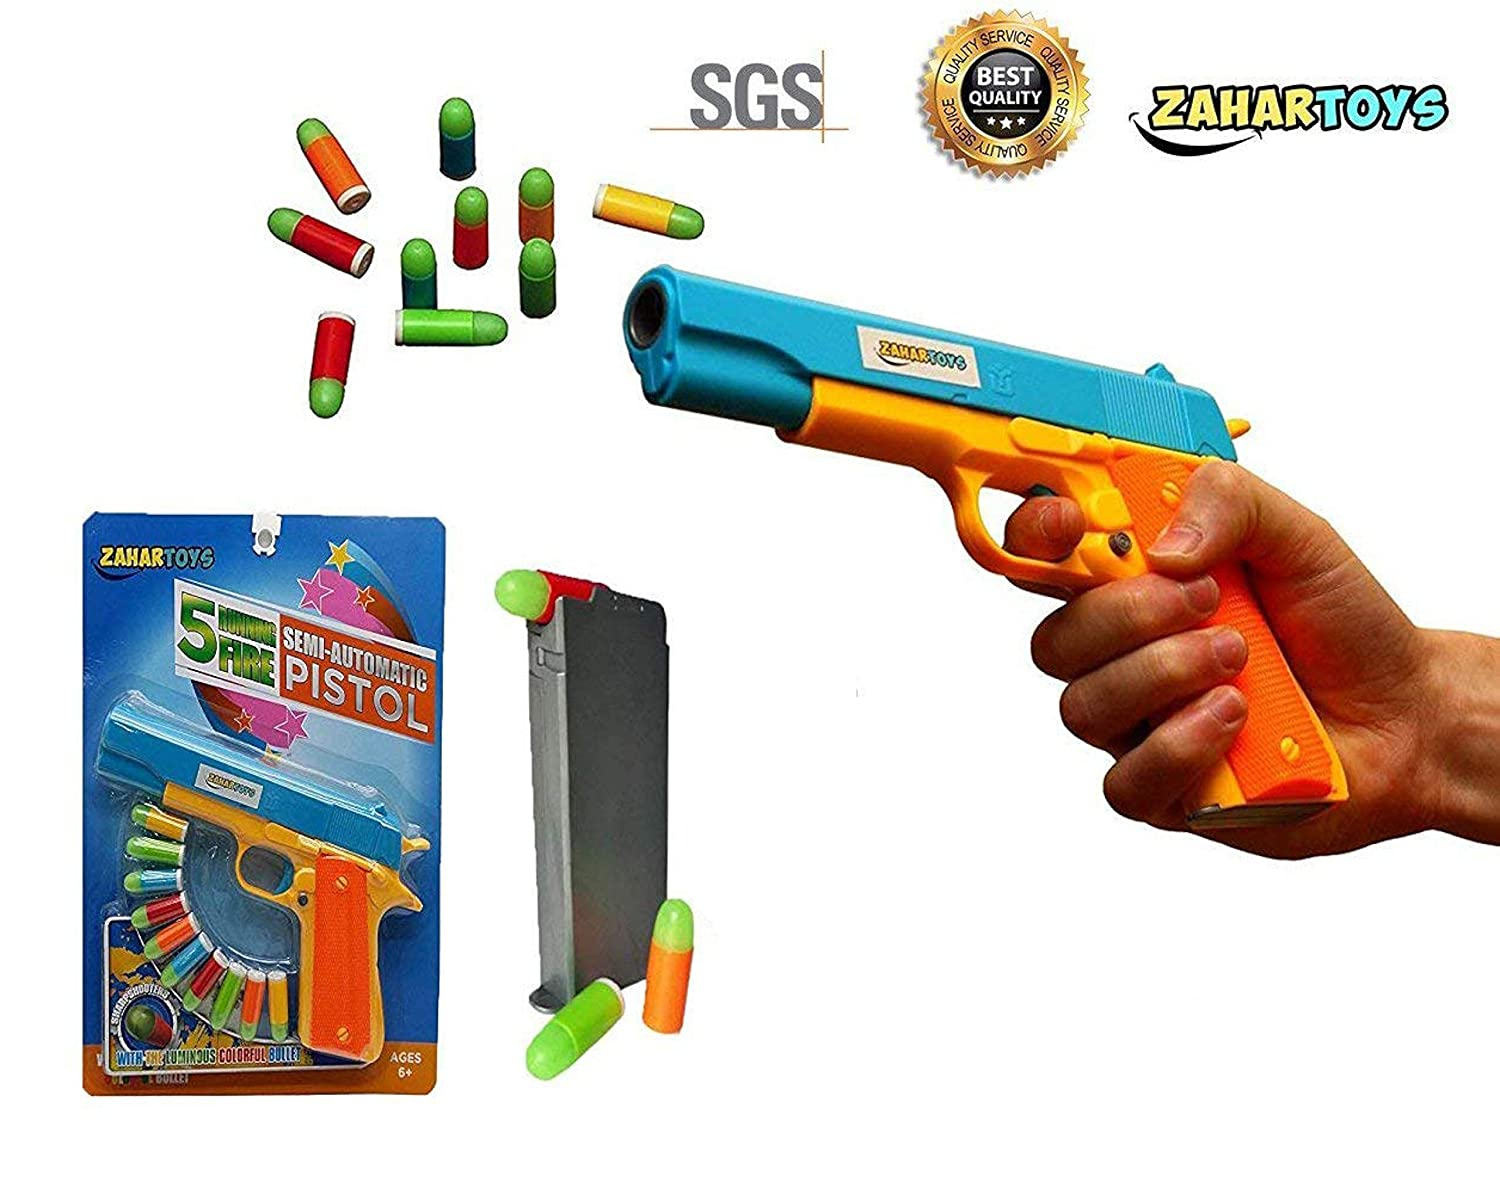 Zahar Toys Realistic Colt 1911 Toy Gun With 10 Colorful Pistol Parts Diagram To Download Soft Bullets Ejecting Magazine Slide Action For Training Or Play Games